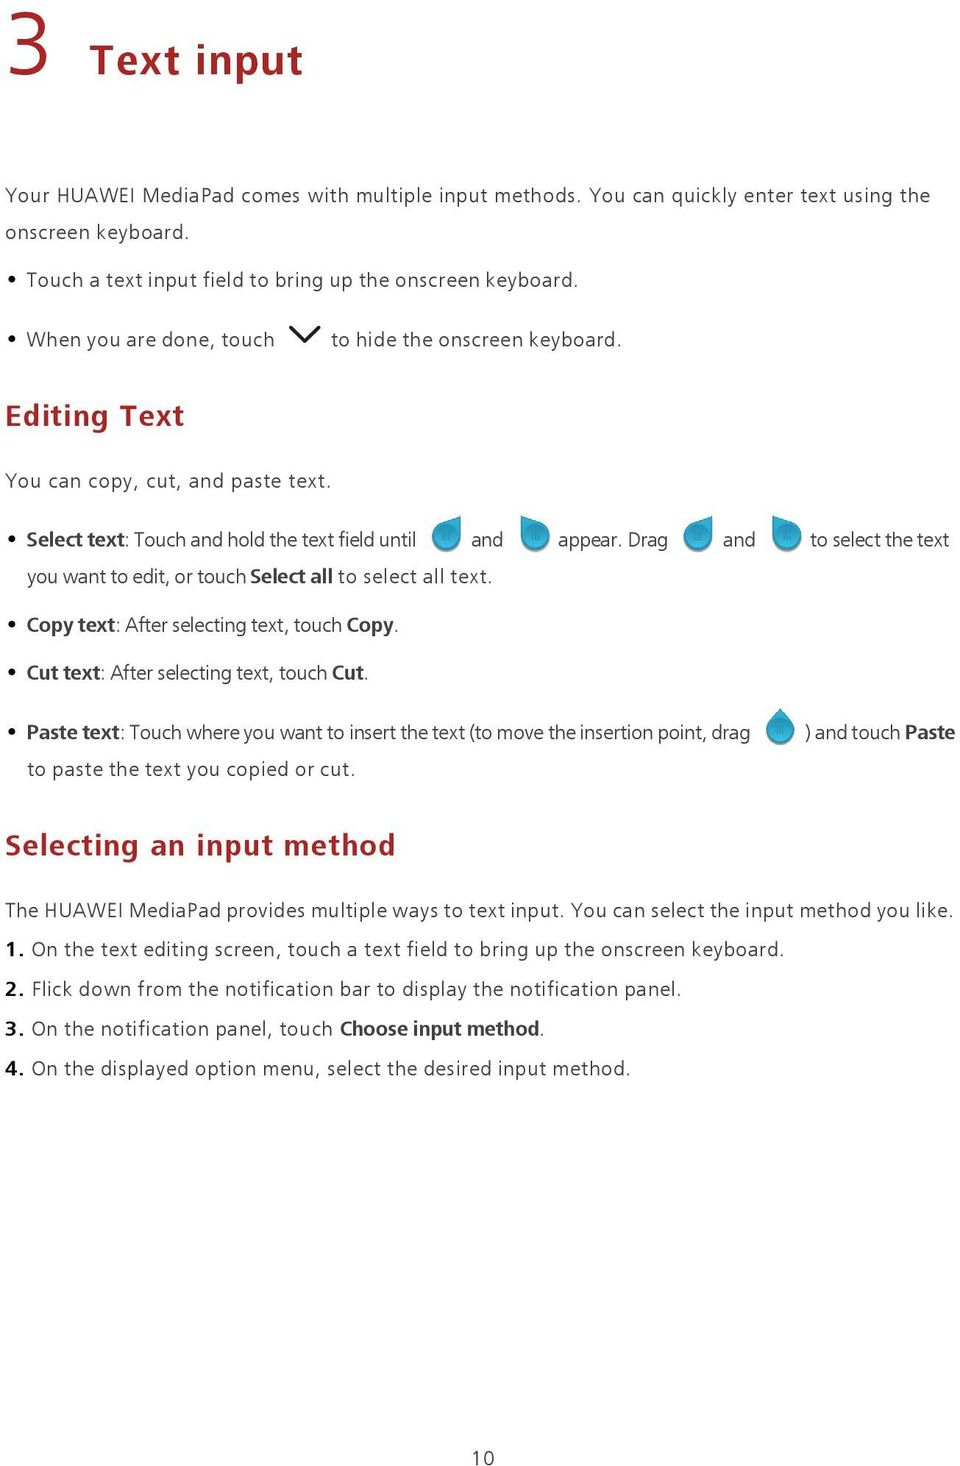 Drag and to select the text you want to edit, or touch Select all to select all text. Copy text: After selecting text, touch Copy. Cut text: After selecting text, touch Cut.